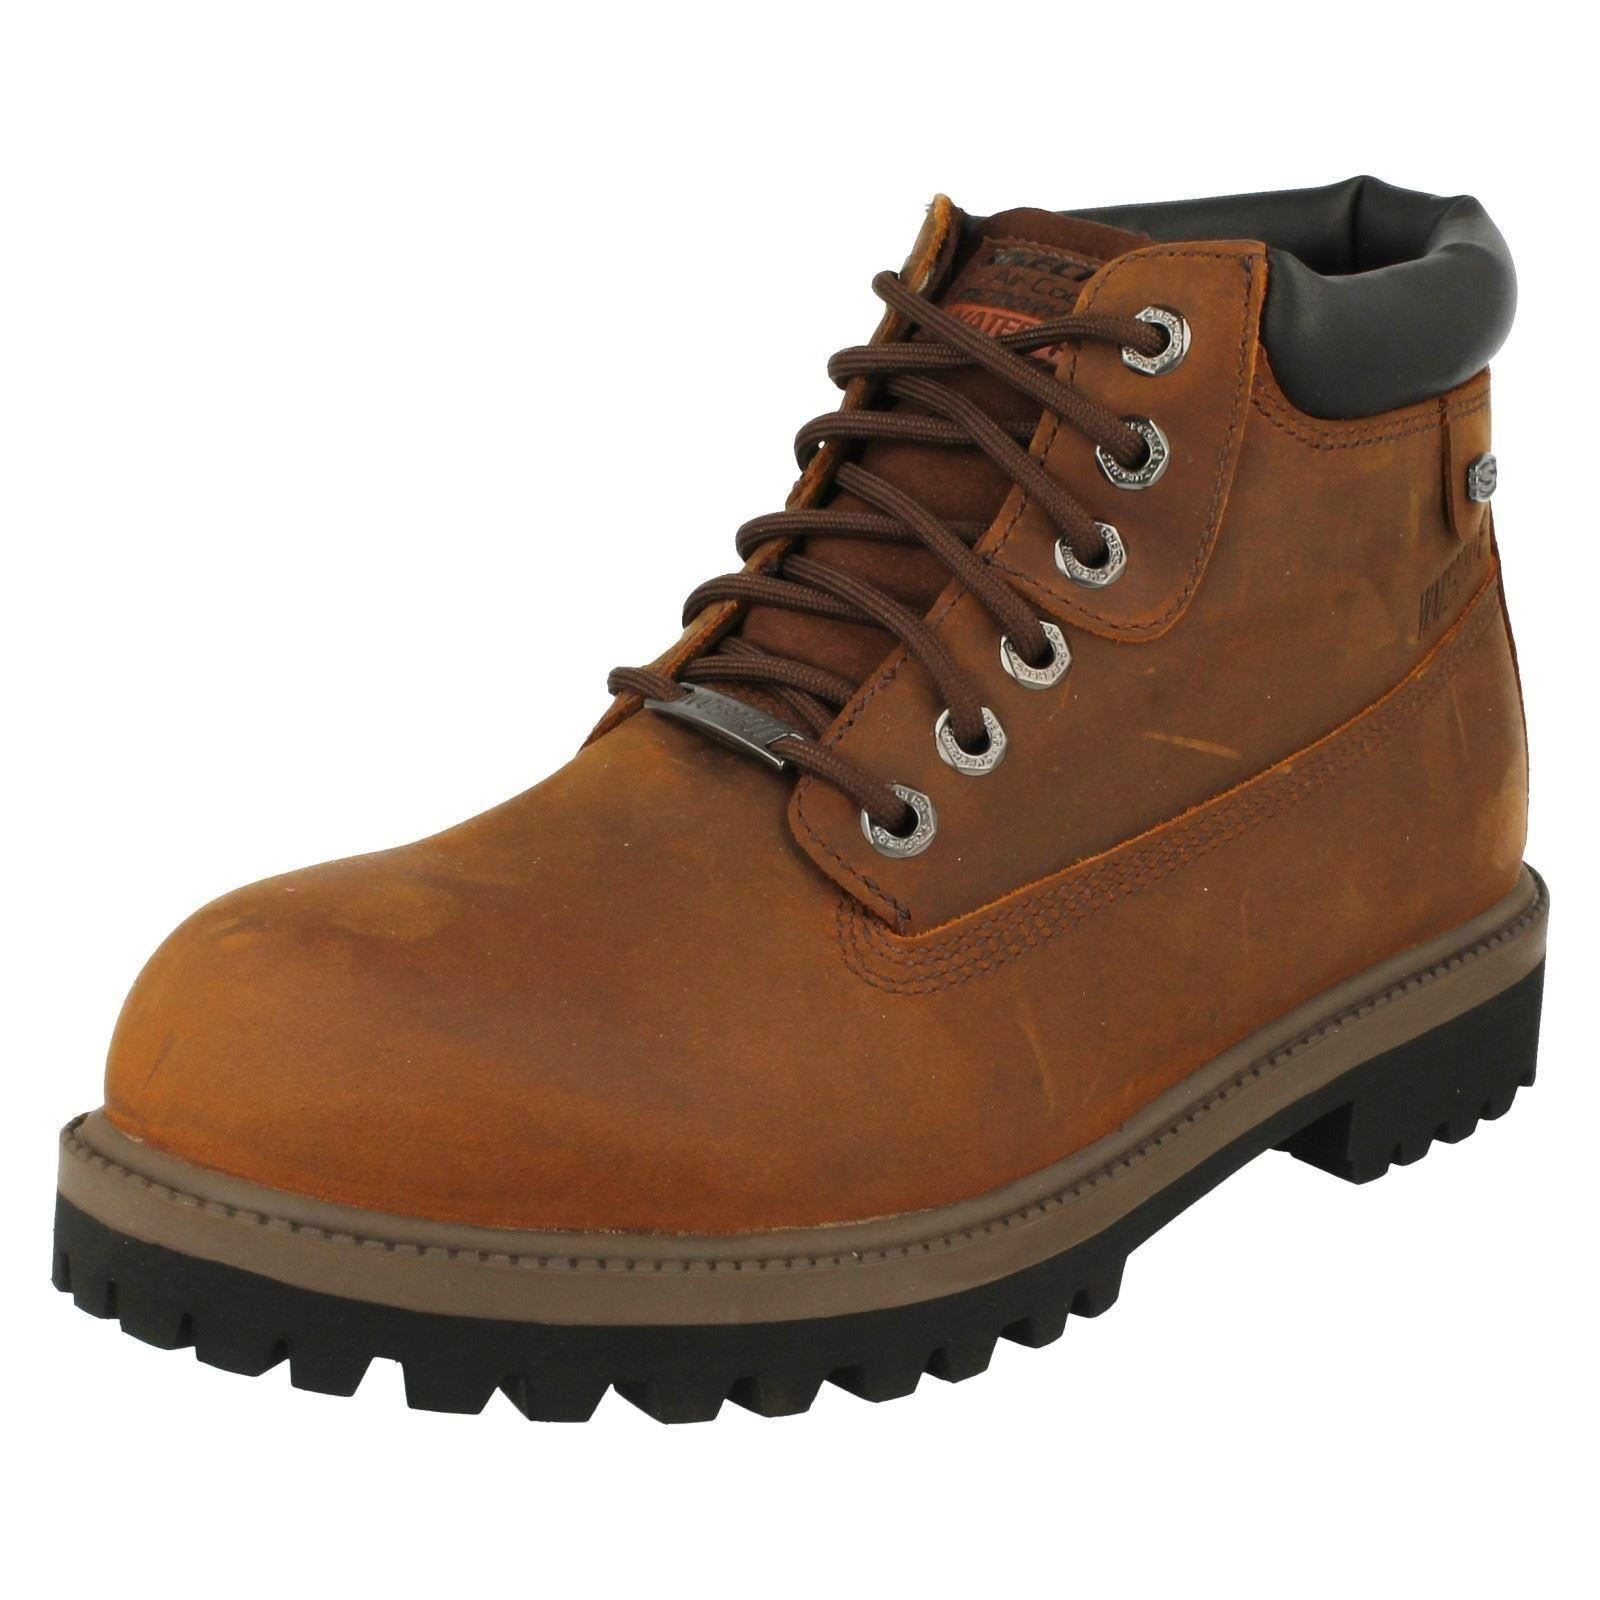 4442 Waterproof Lace Up Leather Ankle Boot By Skechers £65.00 Mens VERDICT